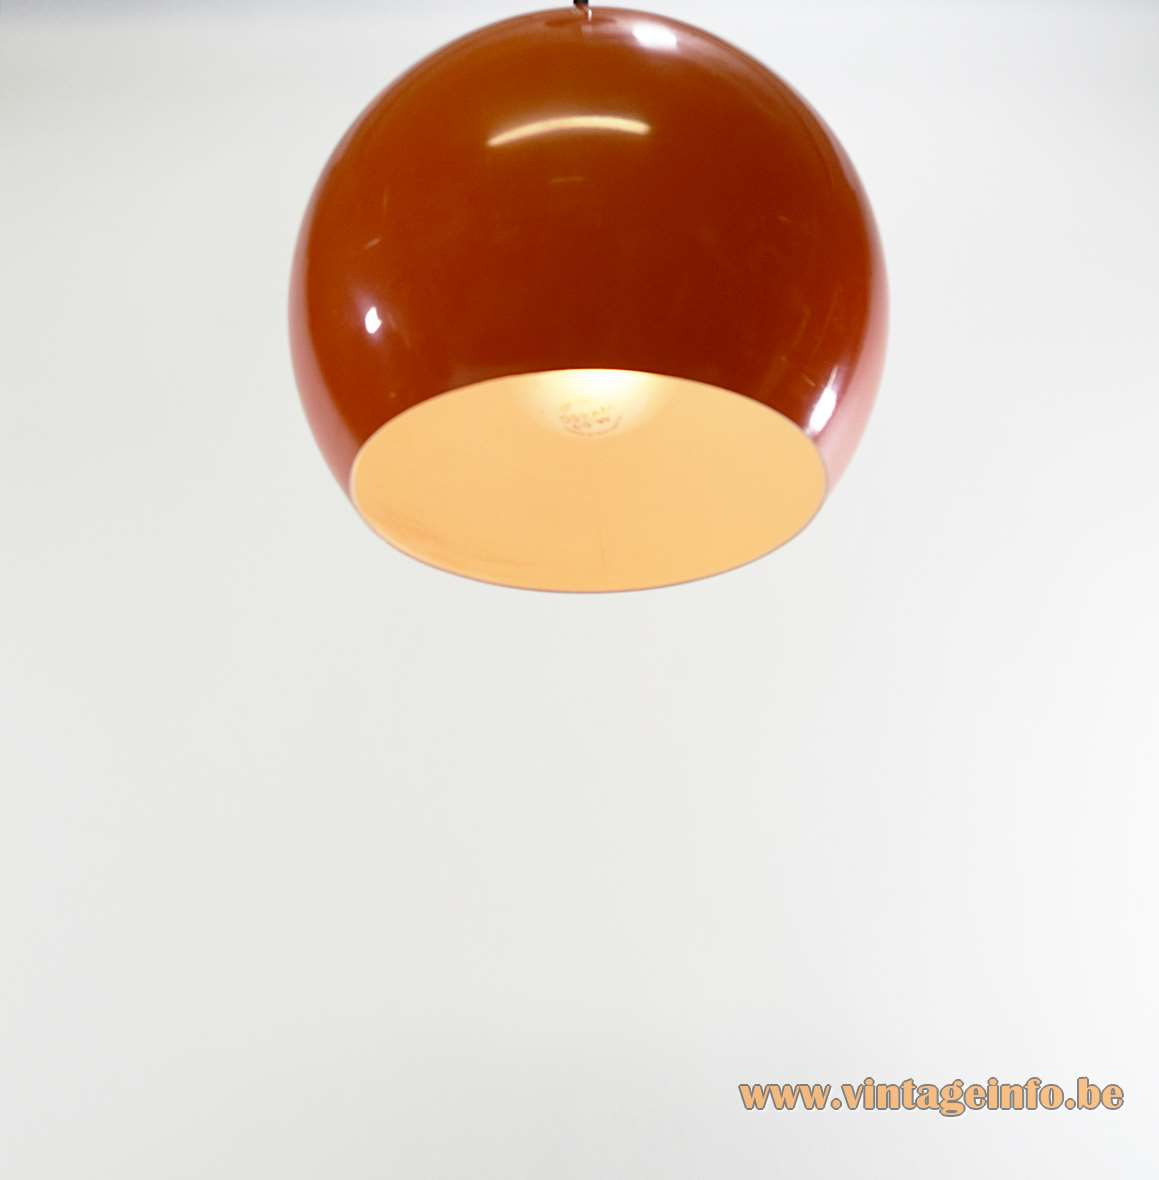 Eyeball pendant light vintage info all about vintage lighting eyeball pendant light aloadofball Images